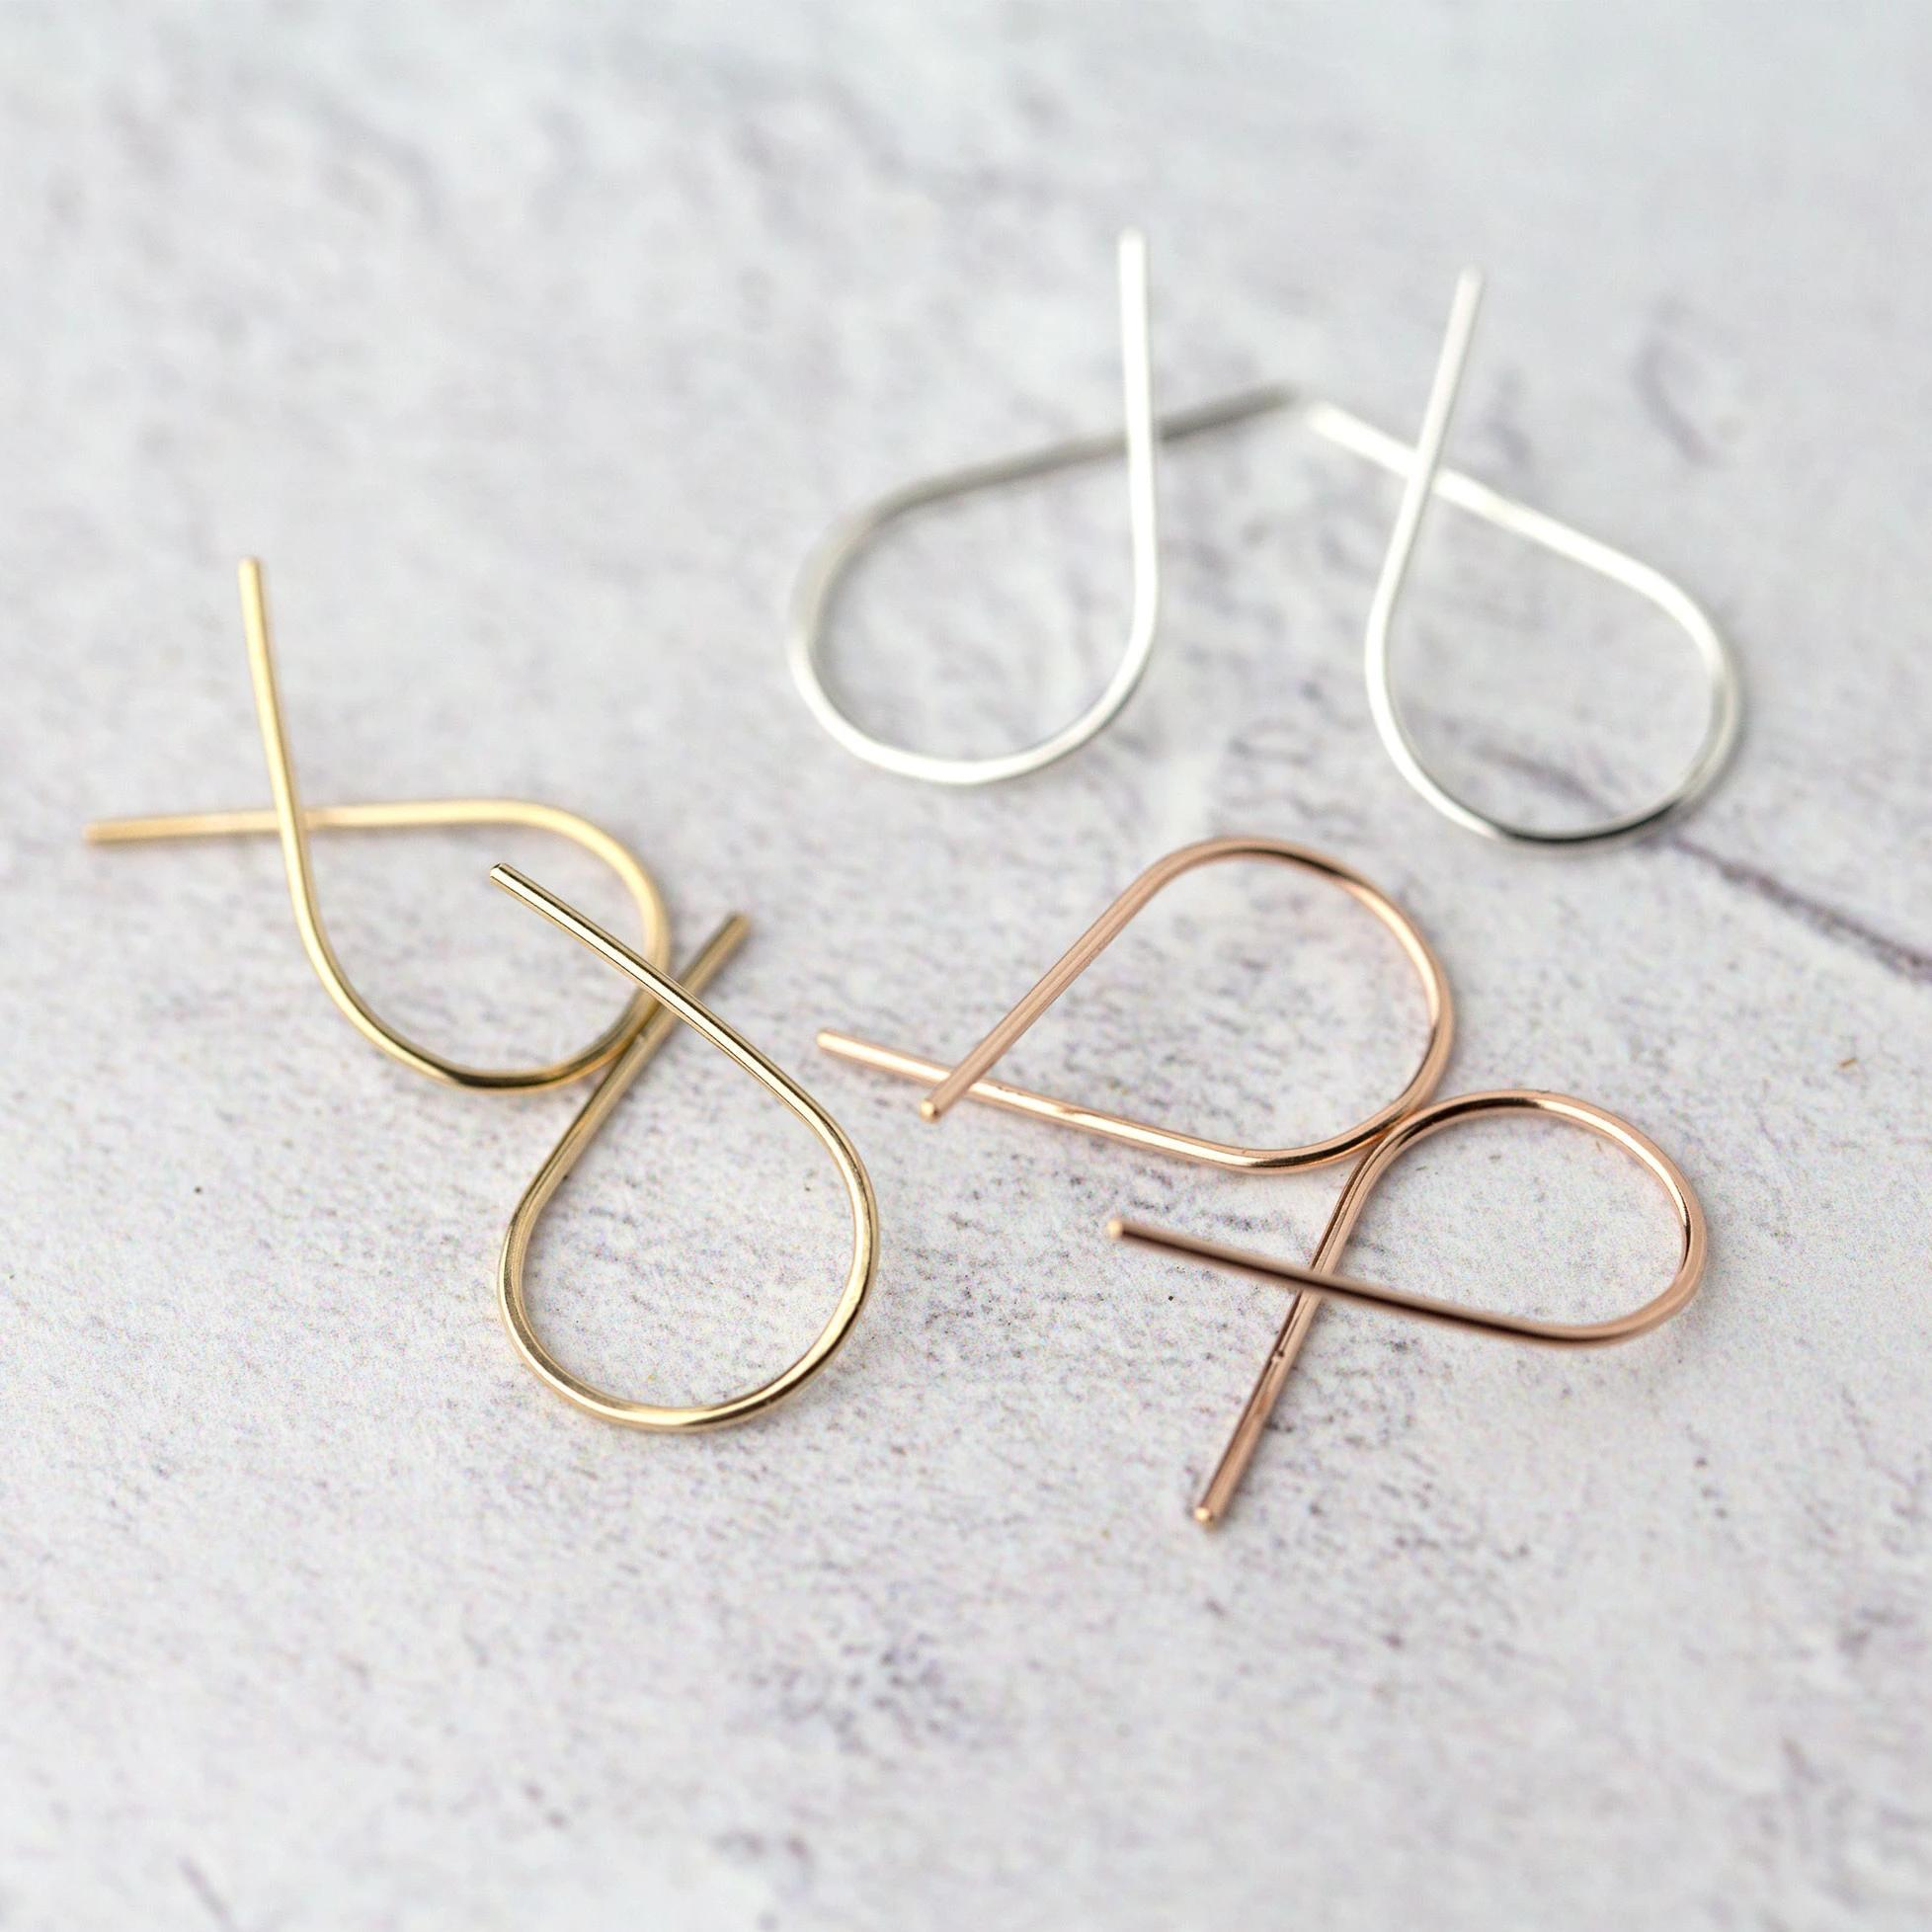 Twist Earrings - Handmade Jewelry by Burnish